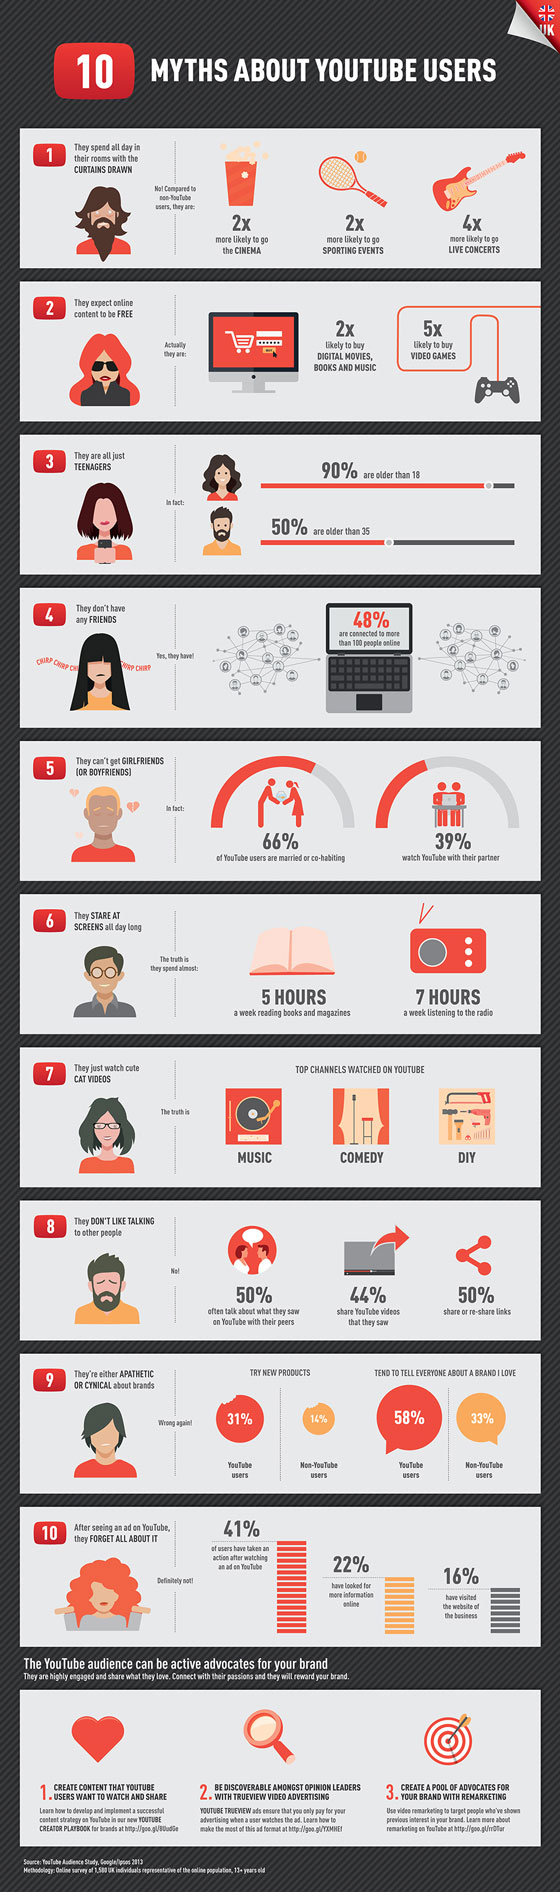 10-Myths-About-YouTube-Users